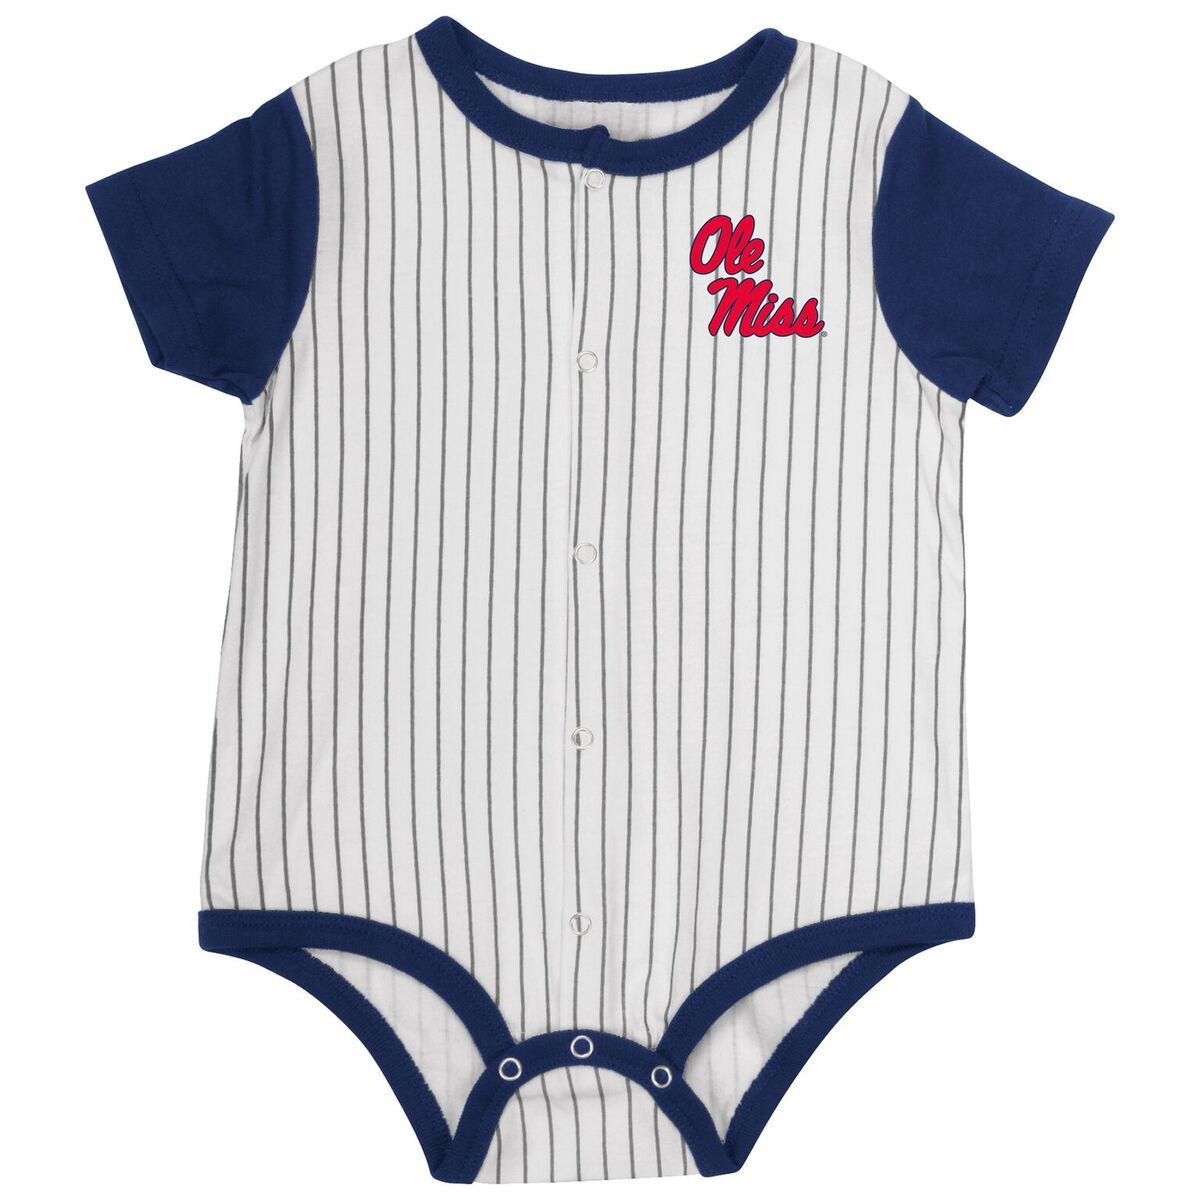 Sultan of Swat Baseball Onesie